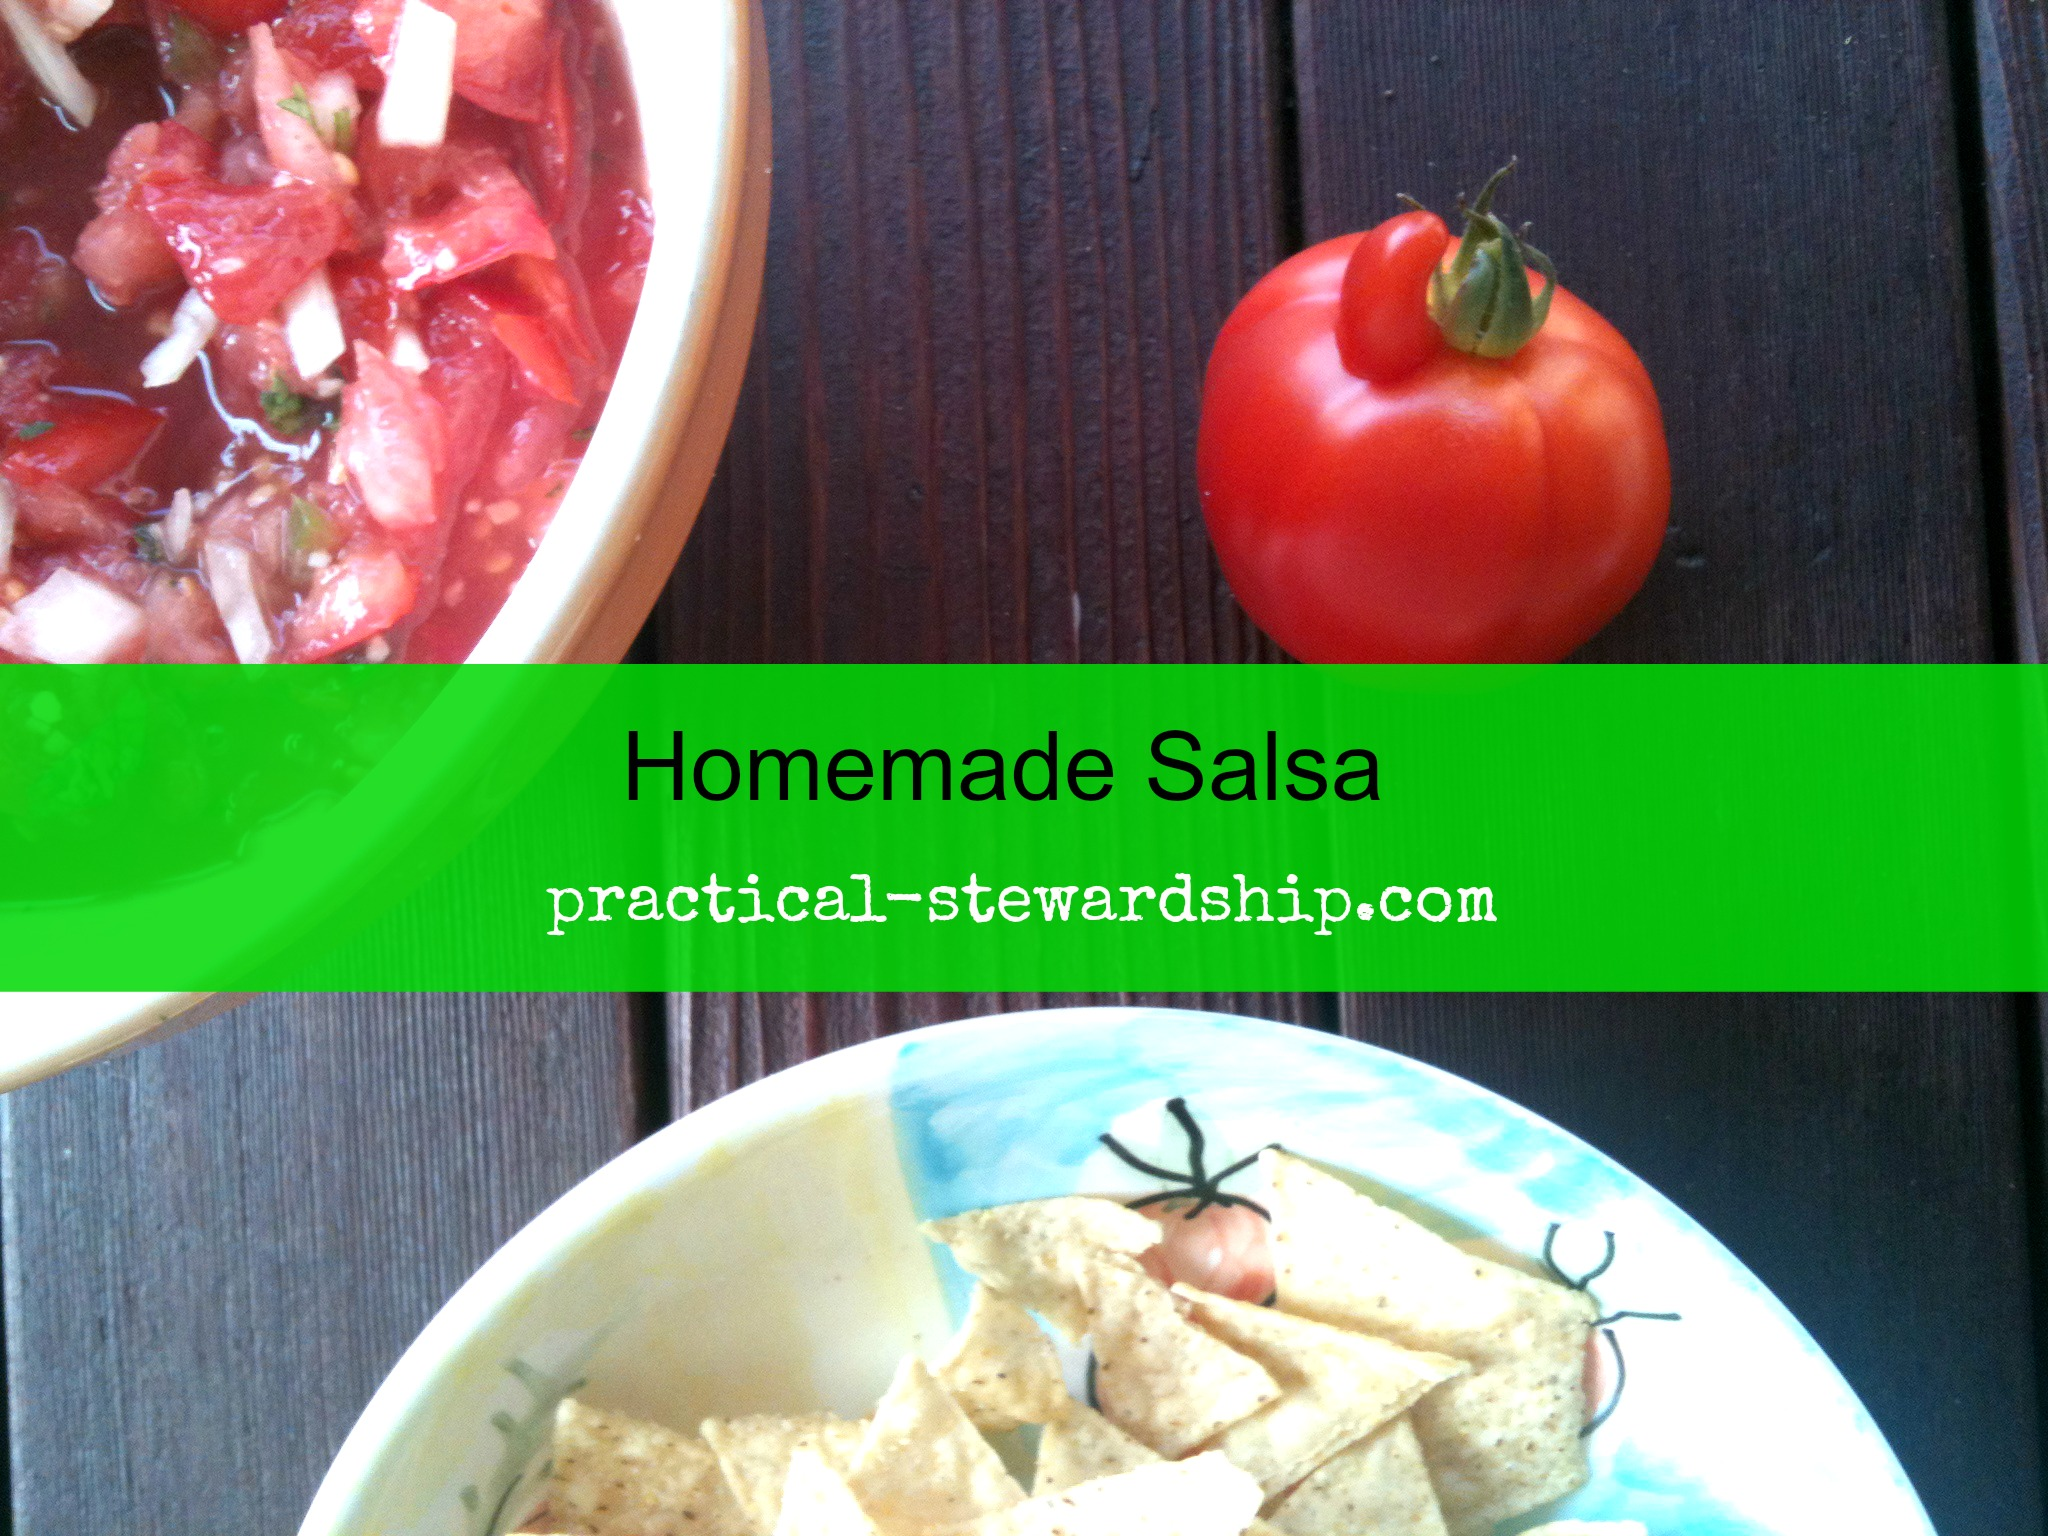 Homemade Salsa @ practical-stewardship.com